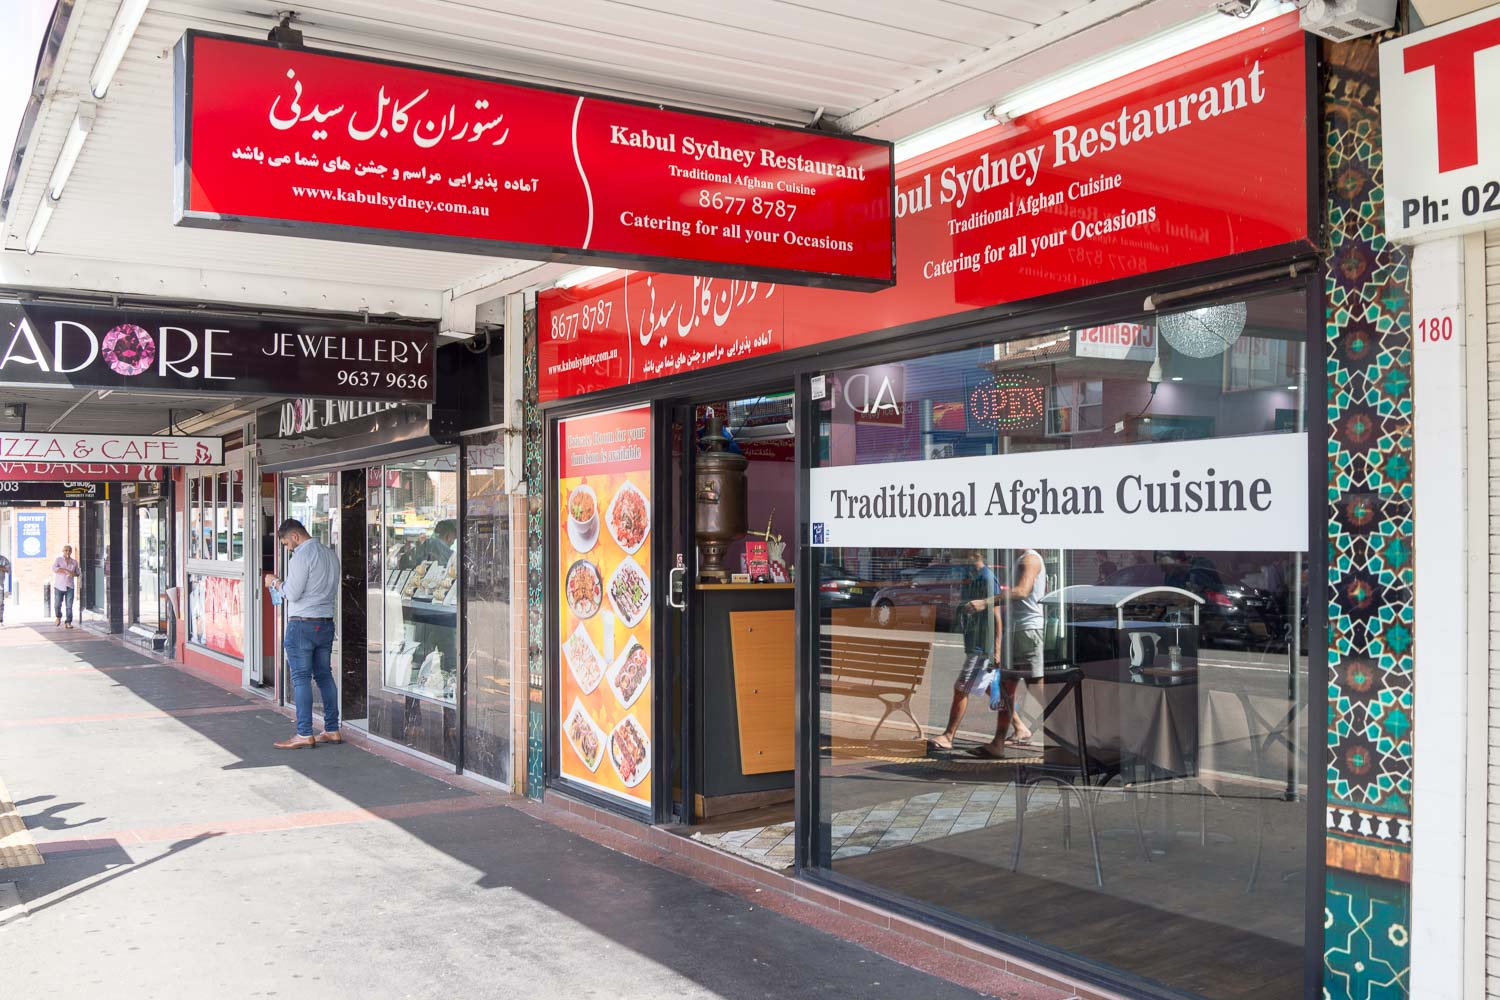 b kyu kabul sydney restaurant afghani merrylands. Black Bedroom Furniture Sets. Home Design Ideas